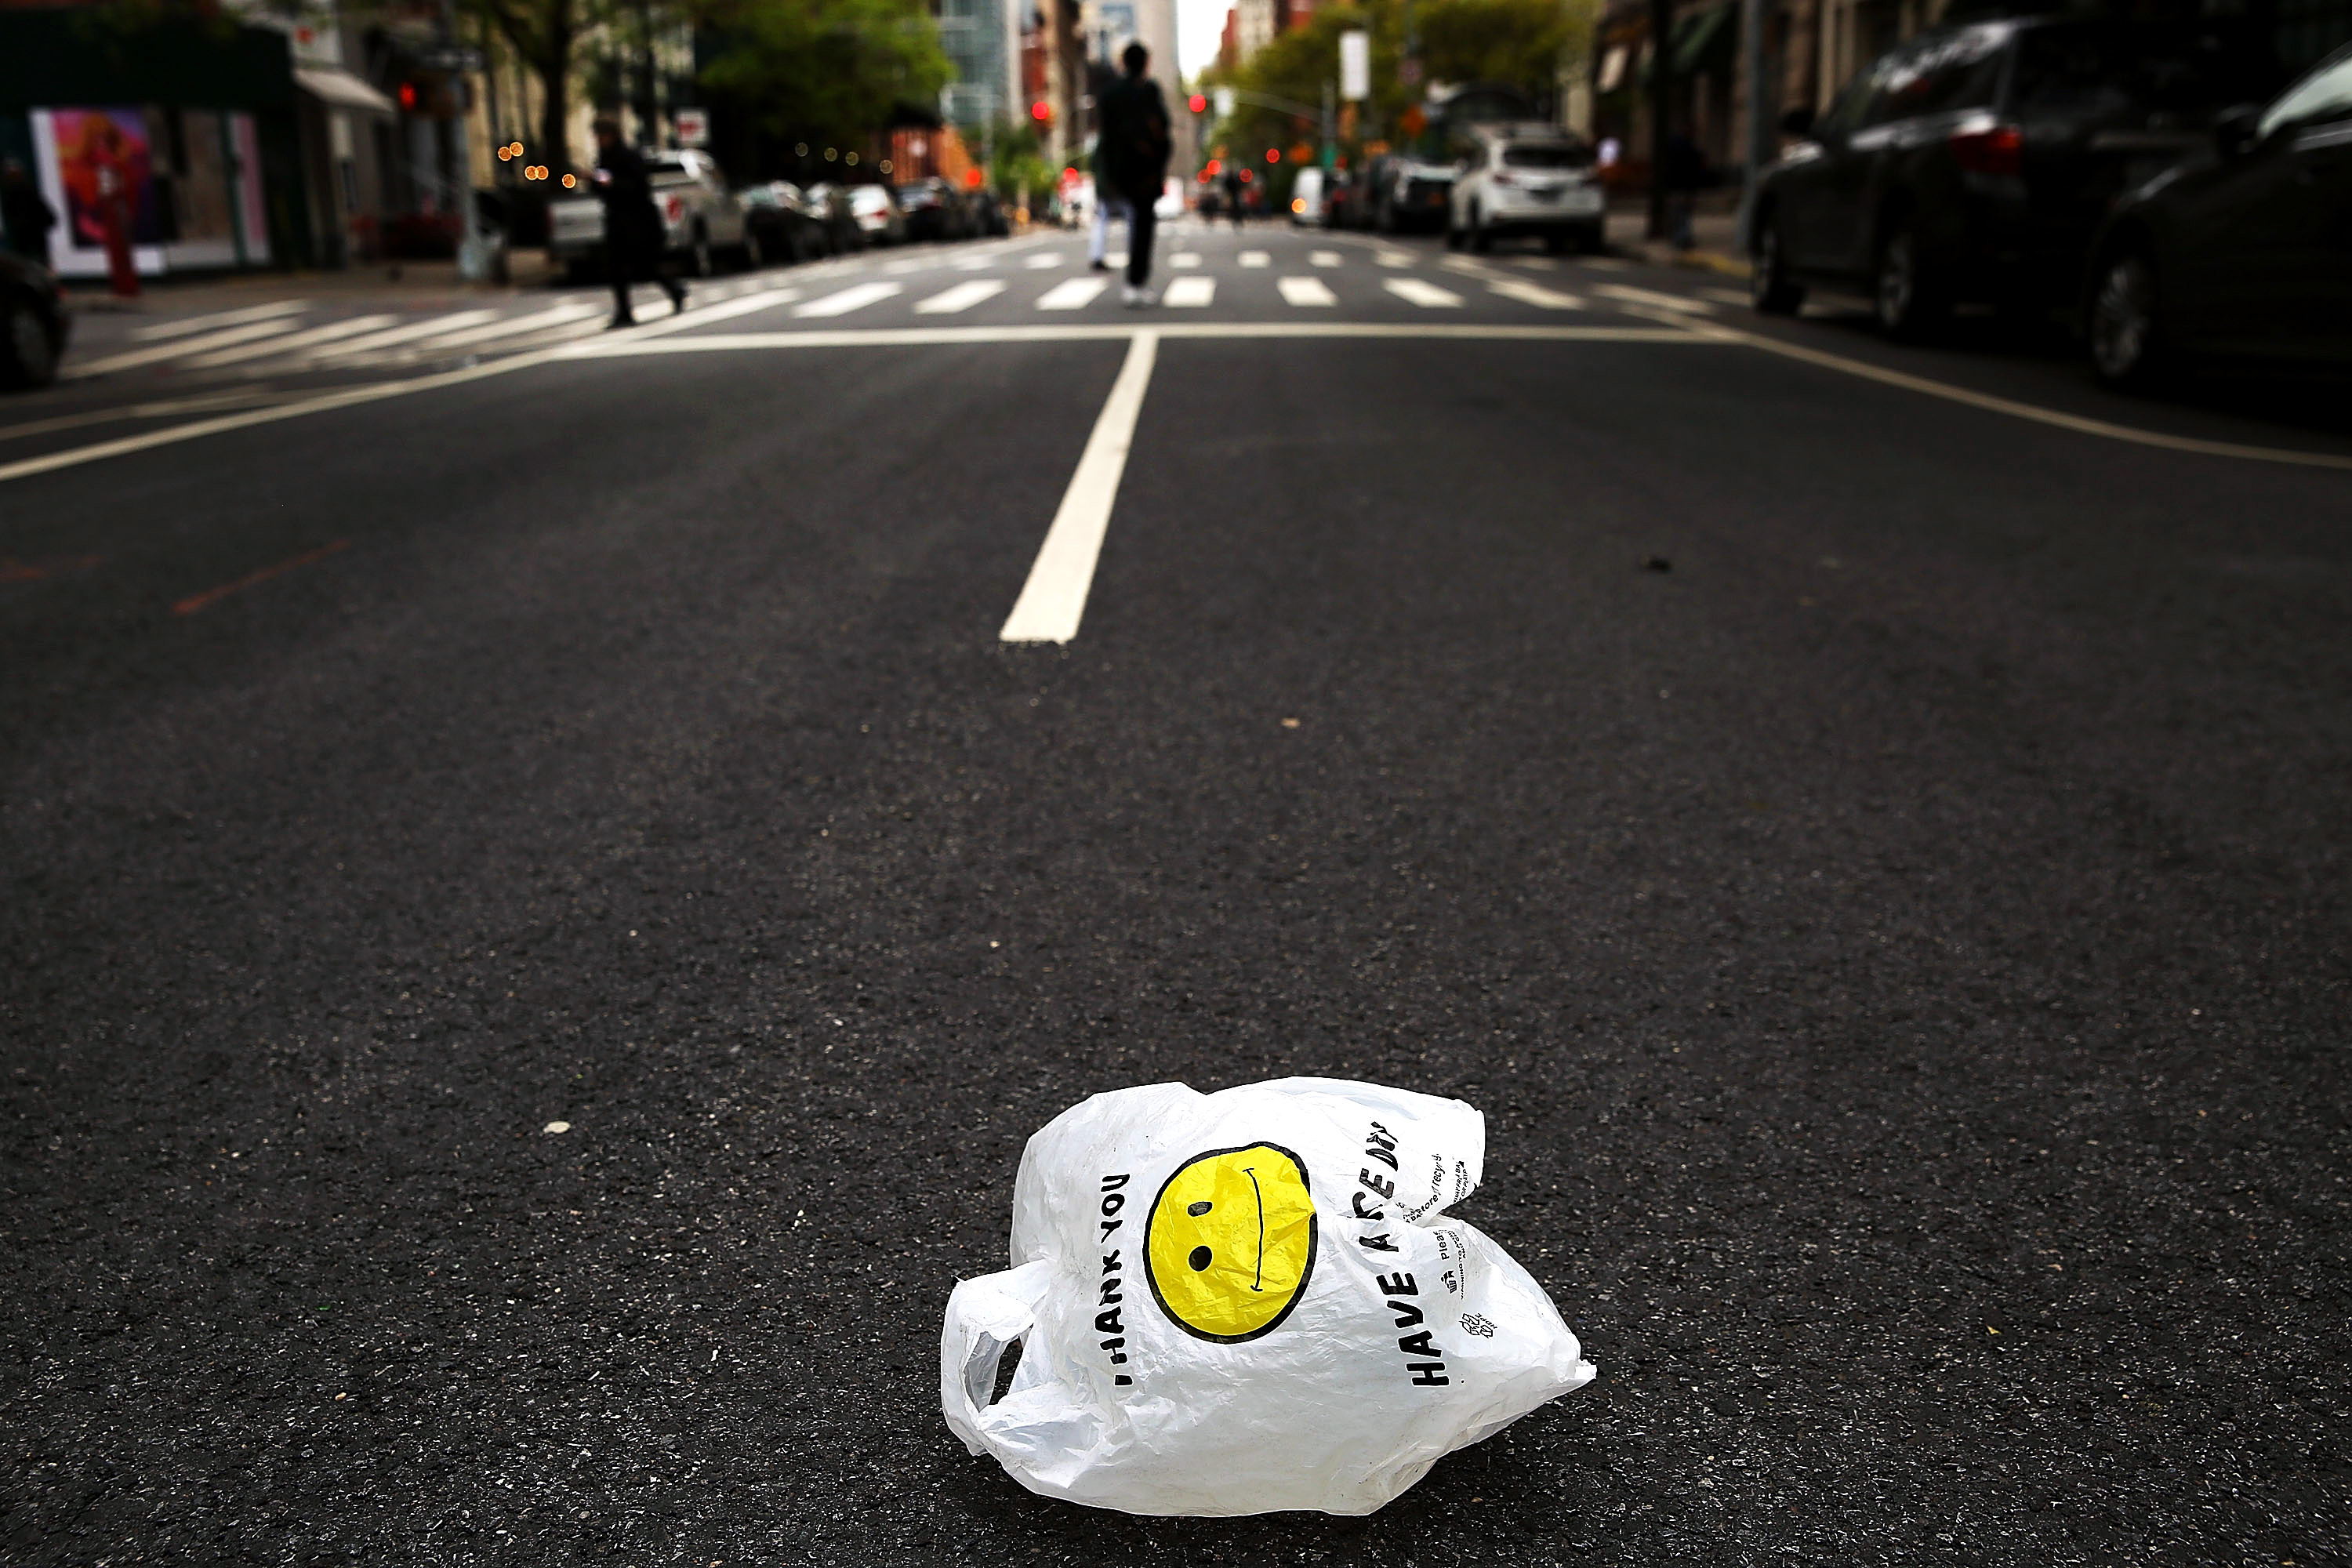 A plastic bag sits in a Manhattan street on May 05, 2016 in New York City.New York's City Council is scheduled to vote Thursday on a bill that would require most stores to charge five cents per bag in an effort to cut down on plastic waste. New York's sanitation department estimates that every year 10 billion bags are thrown in the trash. (Photo by Spencer Platt/Getty Images)